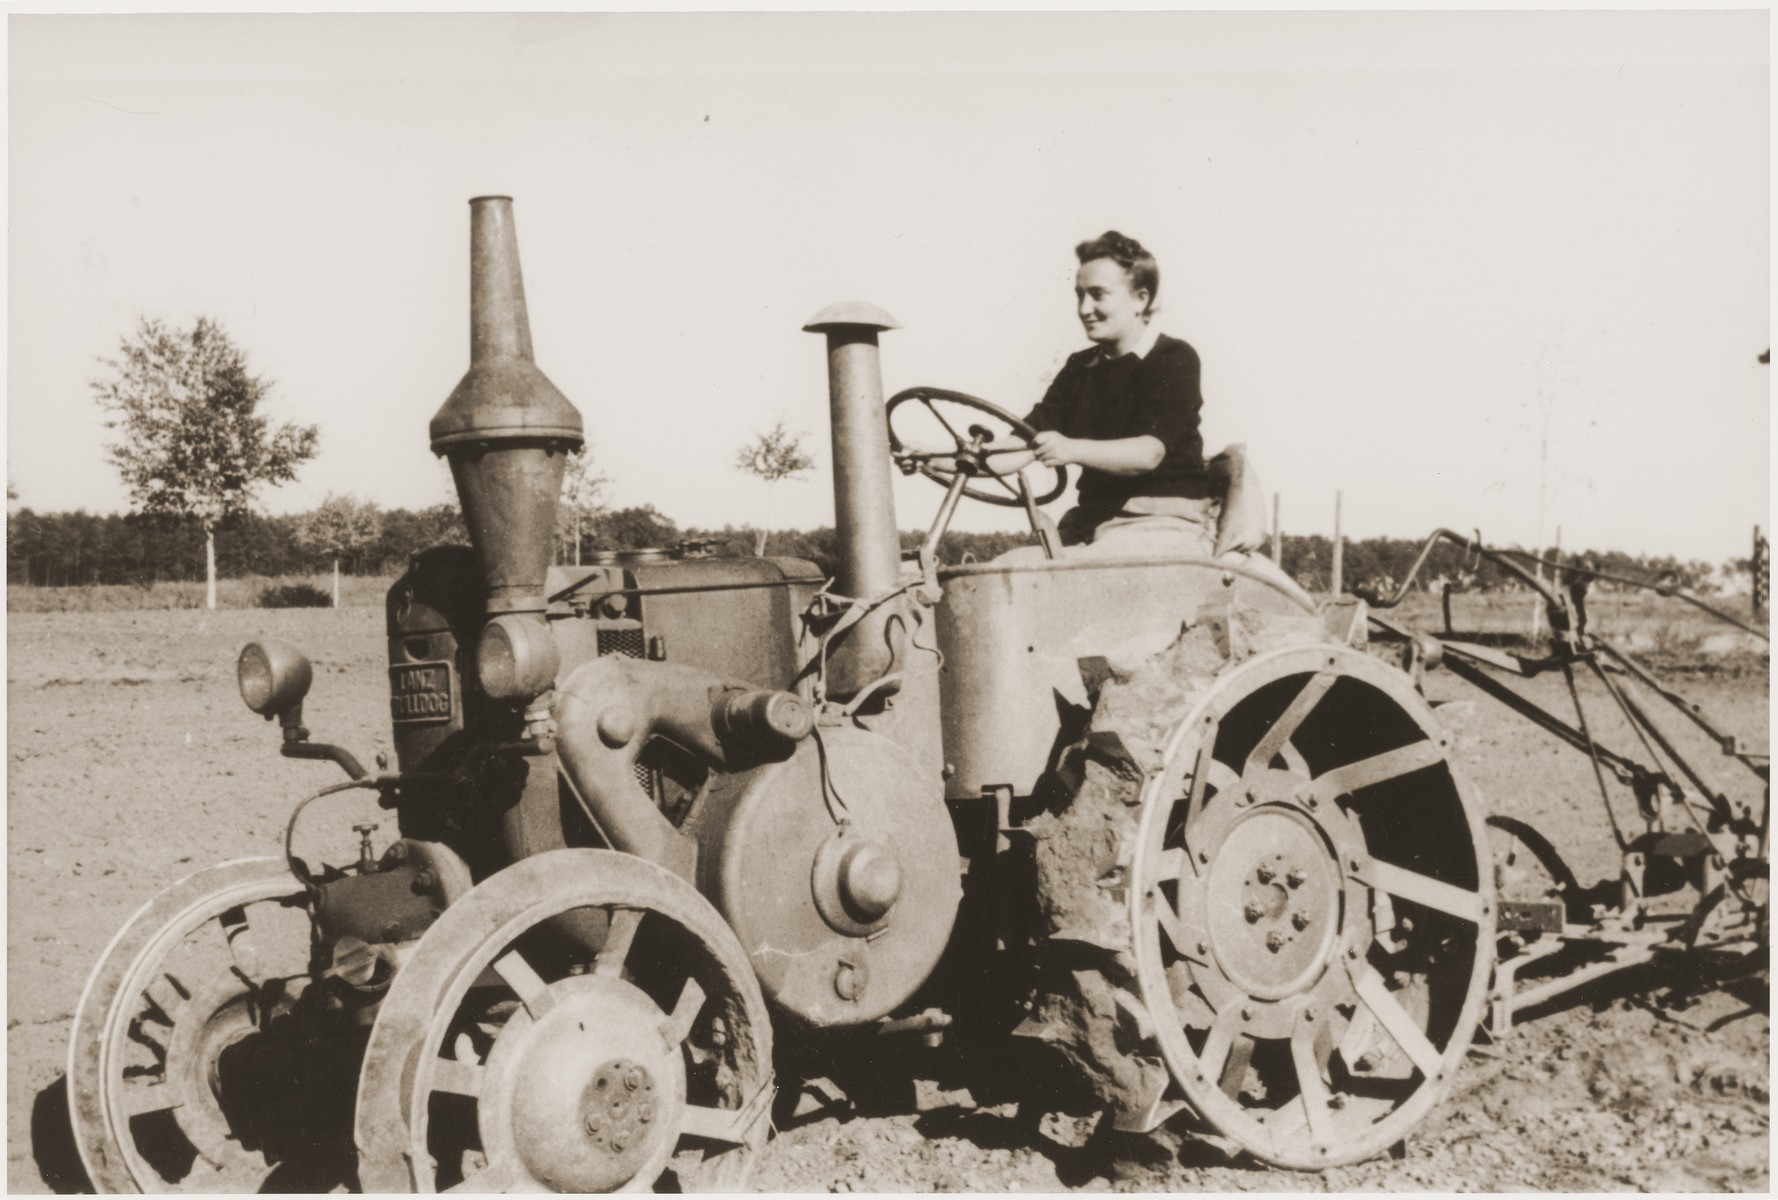 An American woman drives a tractor at the Kibbutz Nili hachshara (Zionist collective) in Pleikershof, Germany, where she came to get agricultural training.